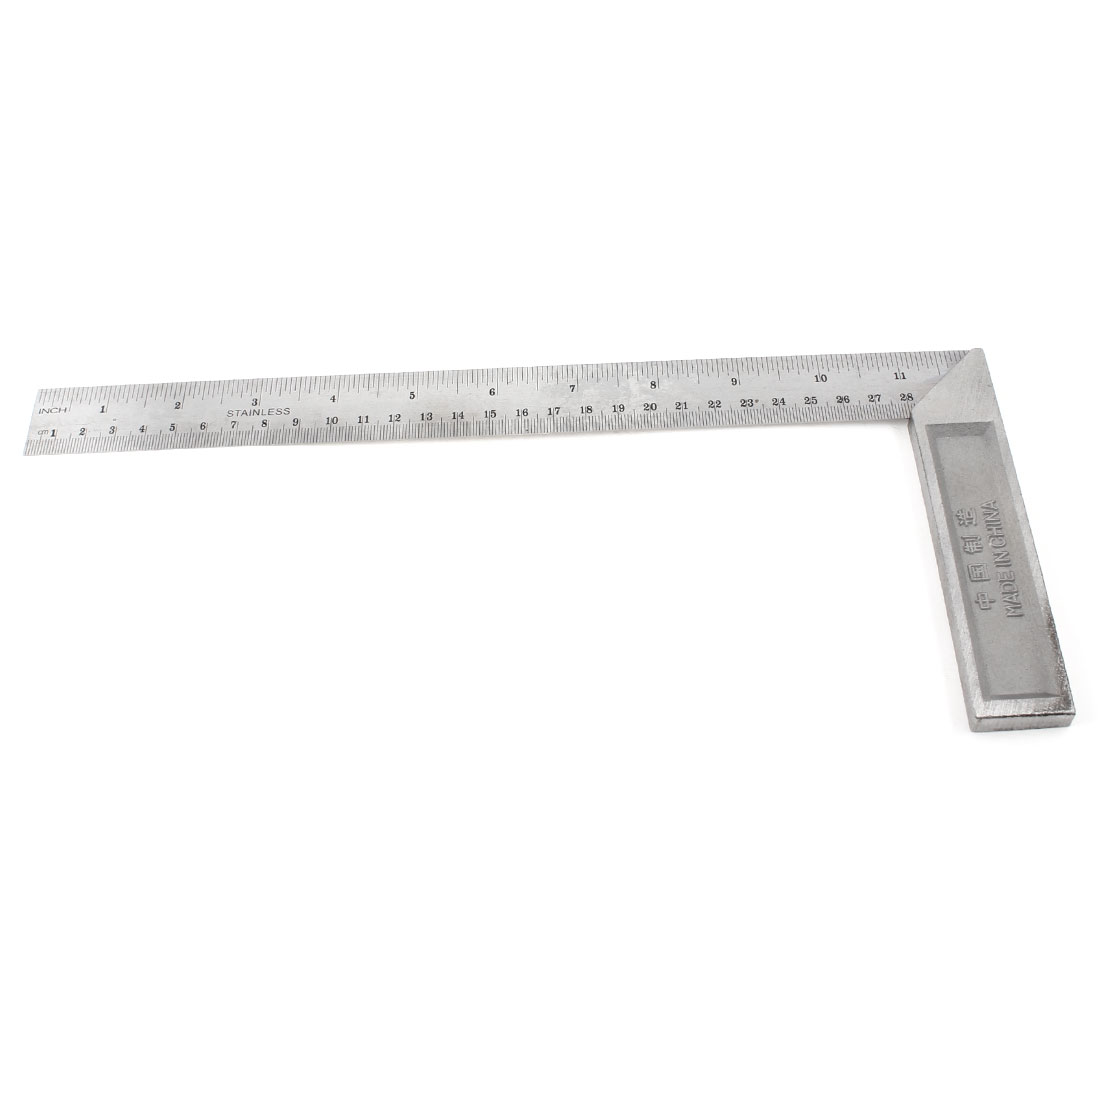 L Shaped Angle Stainless Steel Square Ruler 0-30CM 0-12Inch Measuring Tool